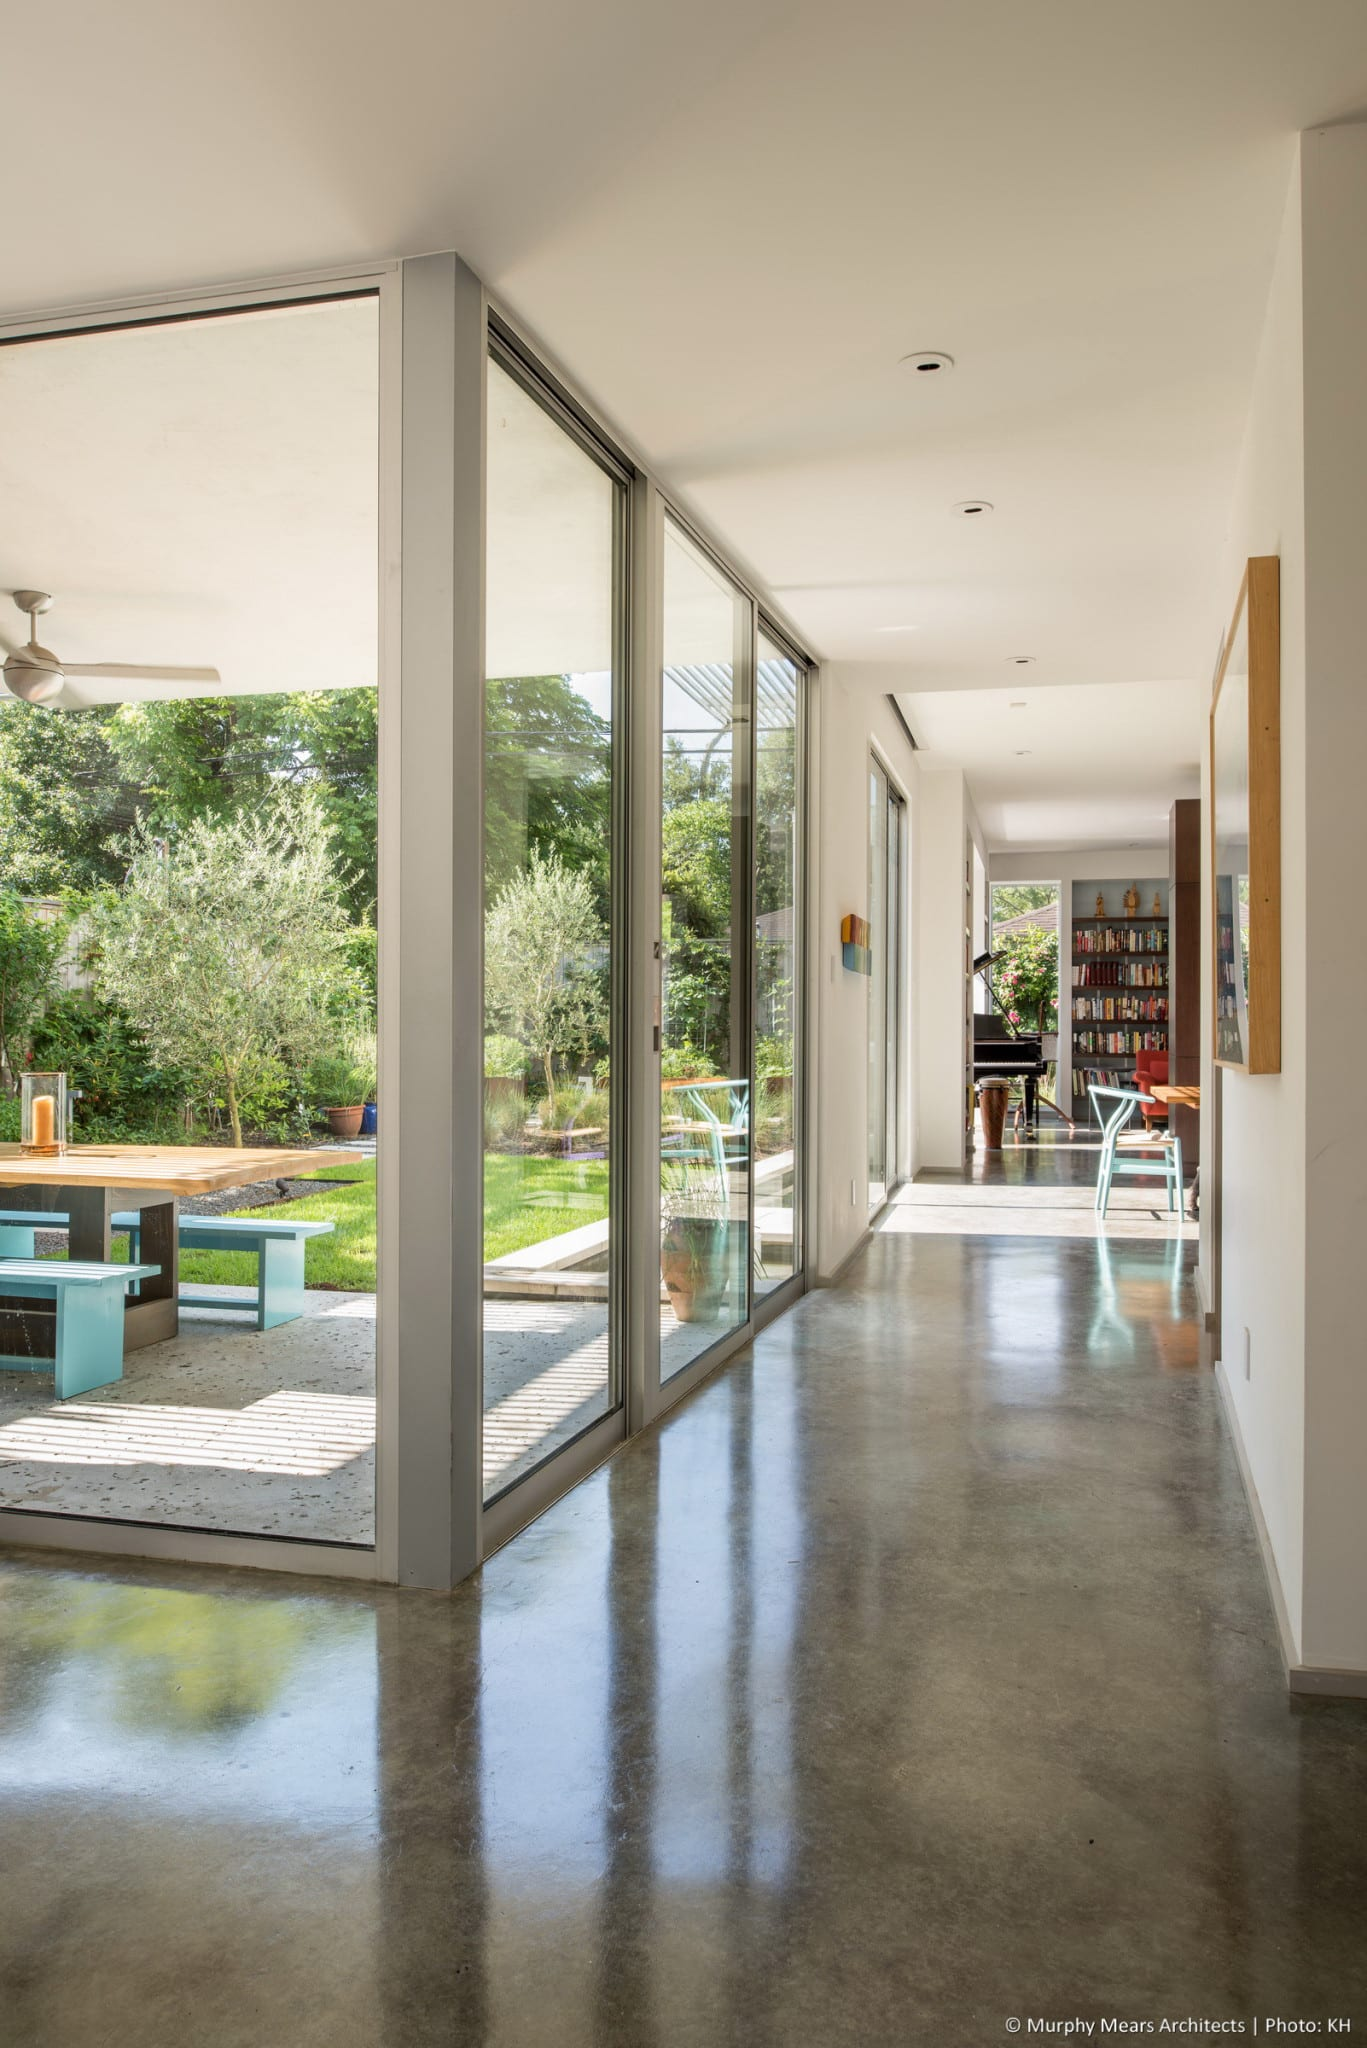 Entry hall with slightly shifted axis leading through kitchen, dining and living spaces.